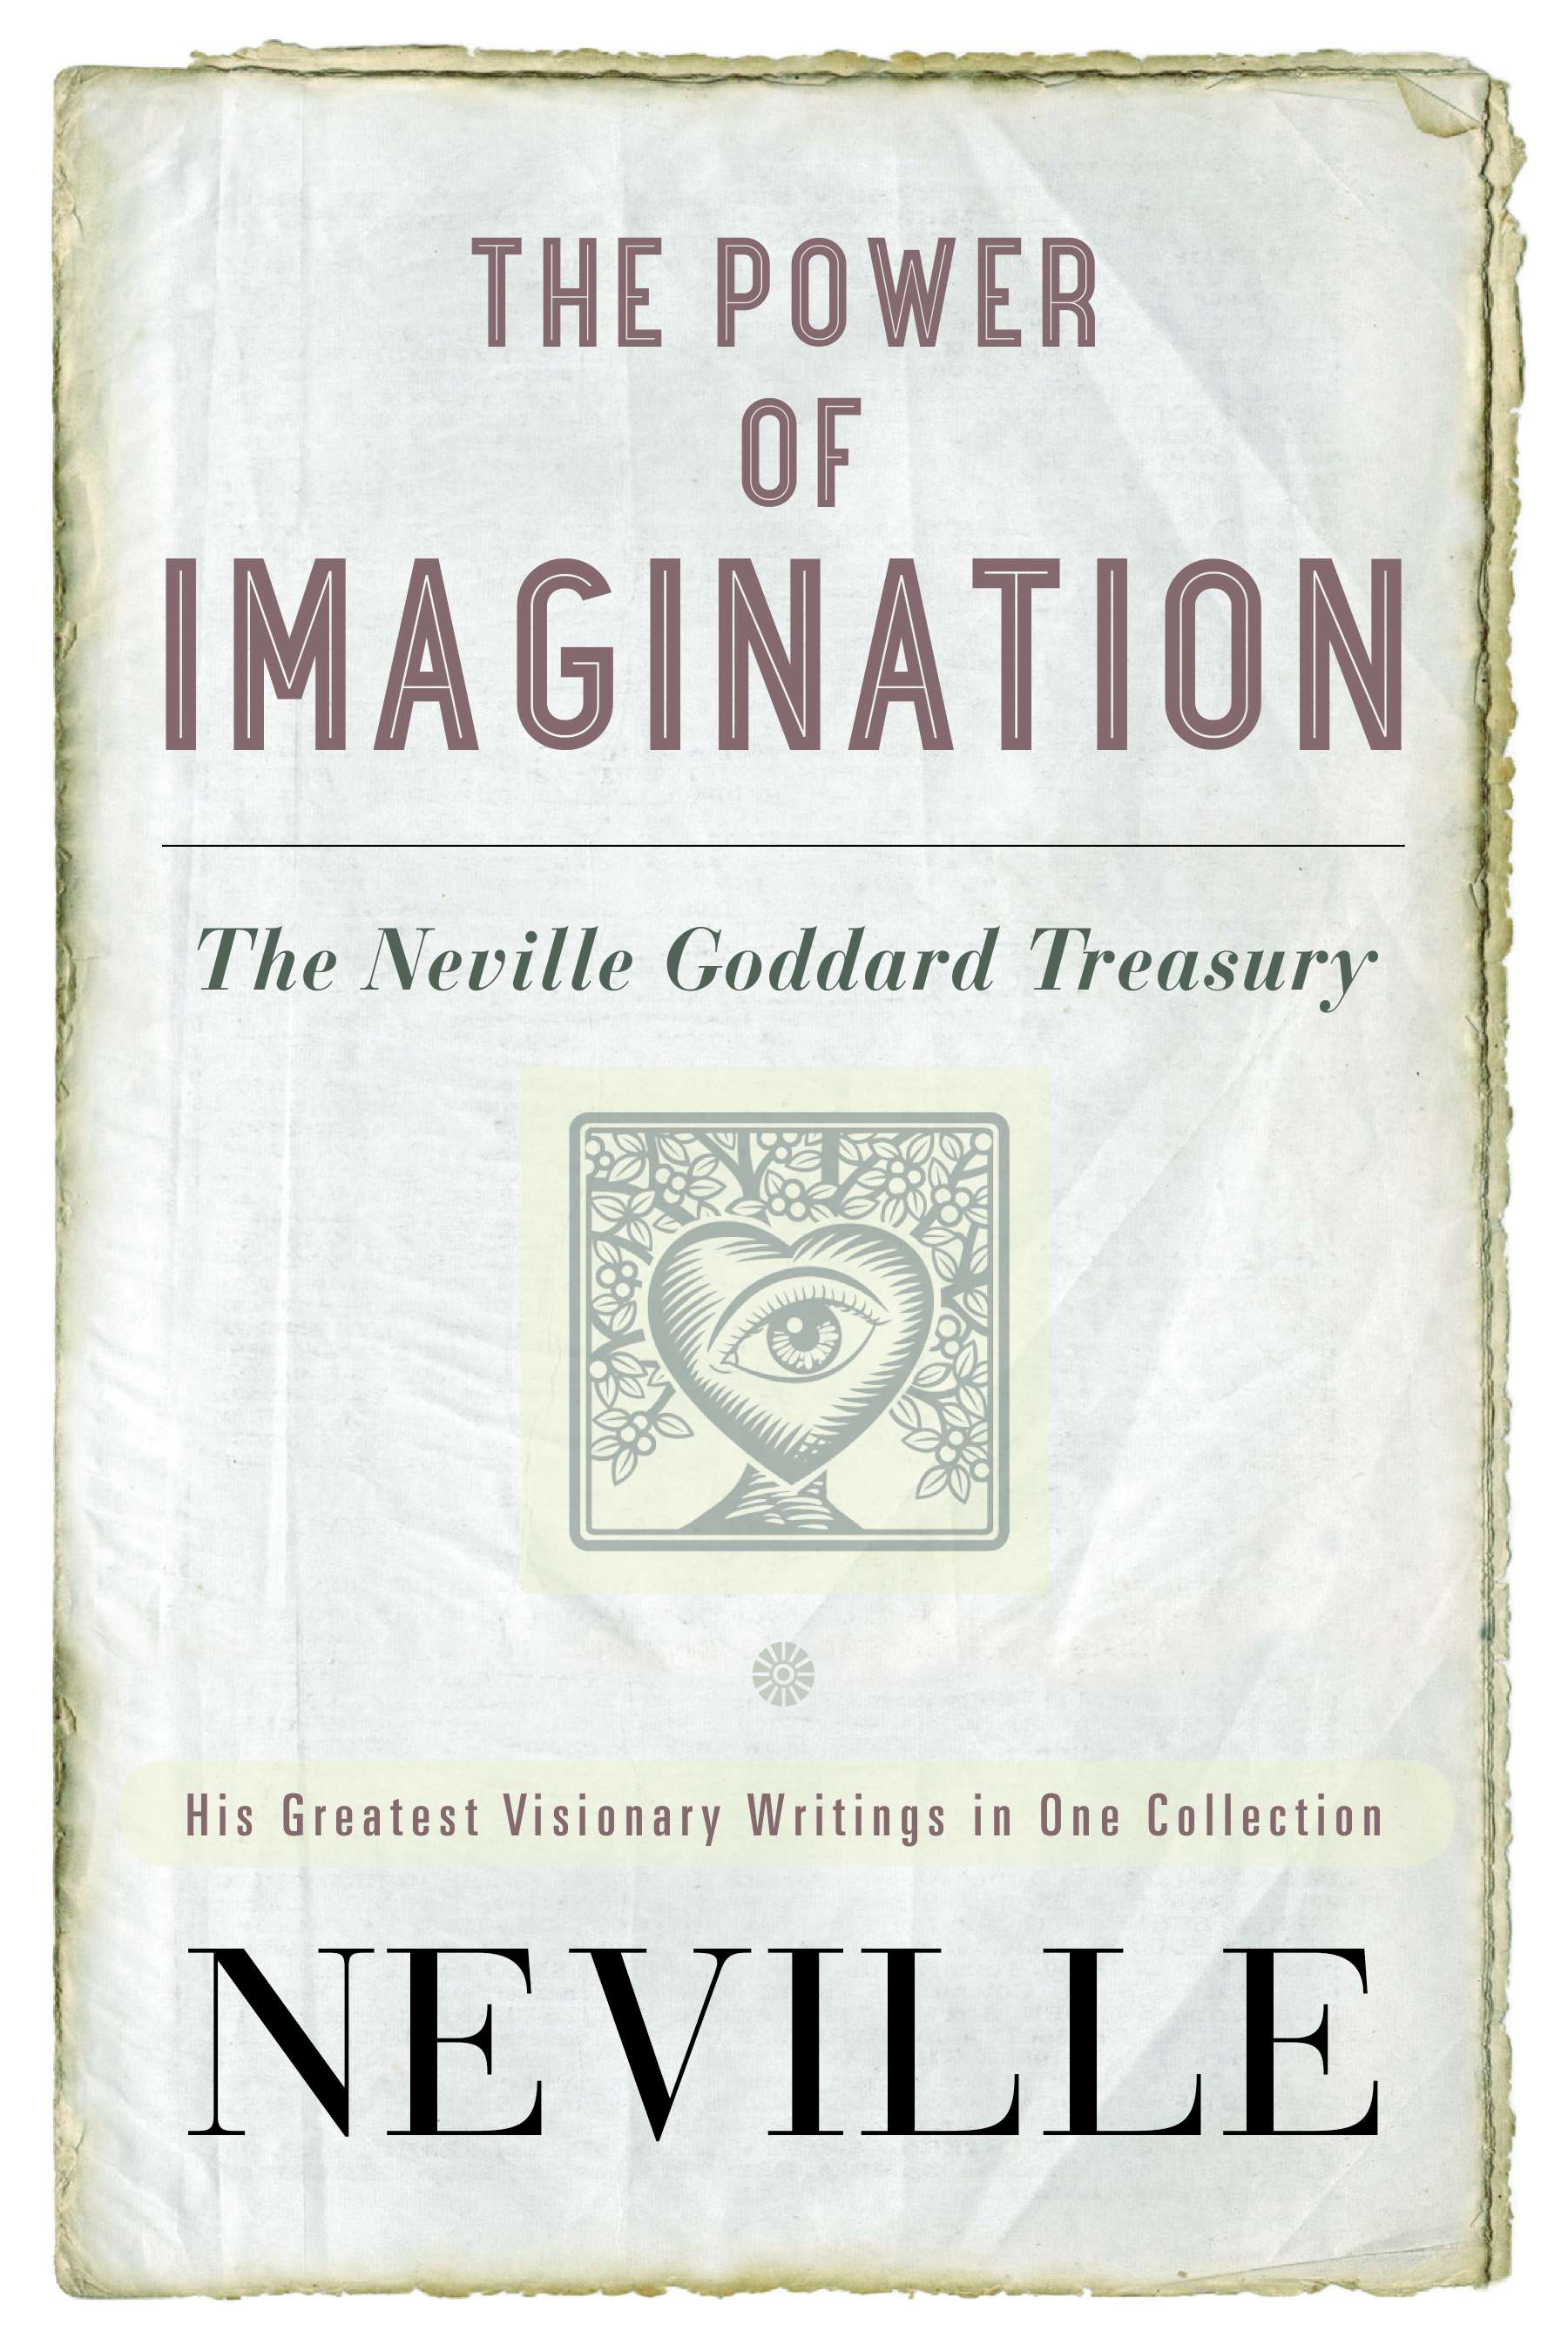 The Power of Imagination The Neville Goddard Treasury